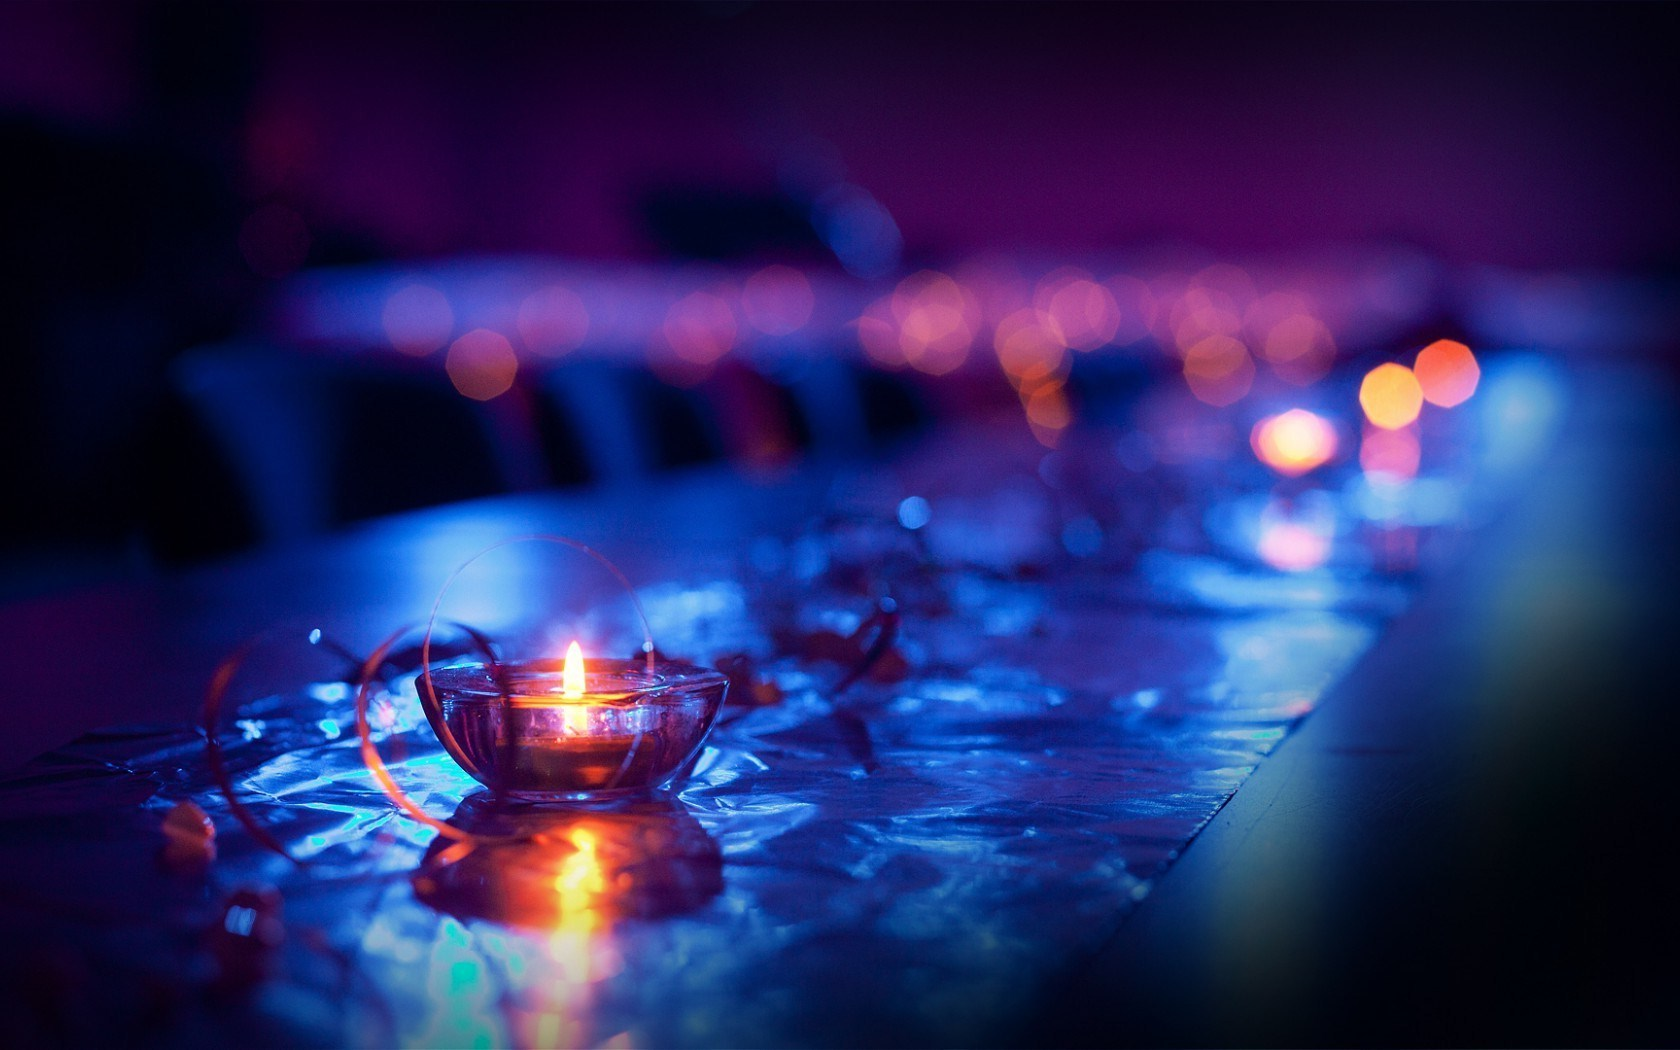 Pretty Candles Close Up Wallpaper 44447 1680x1050px